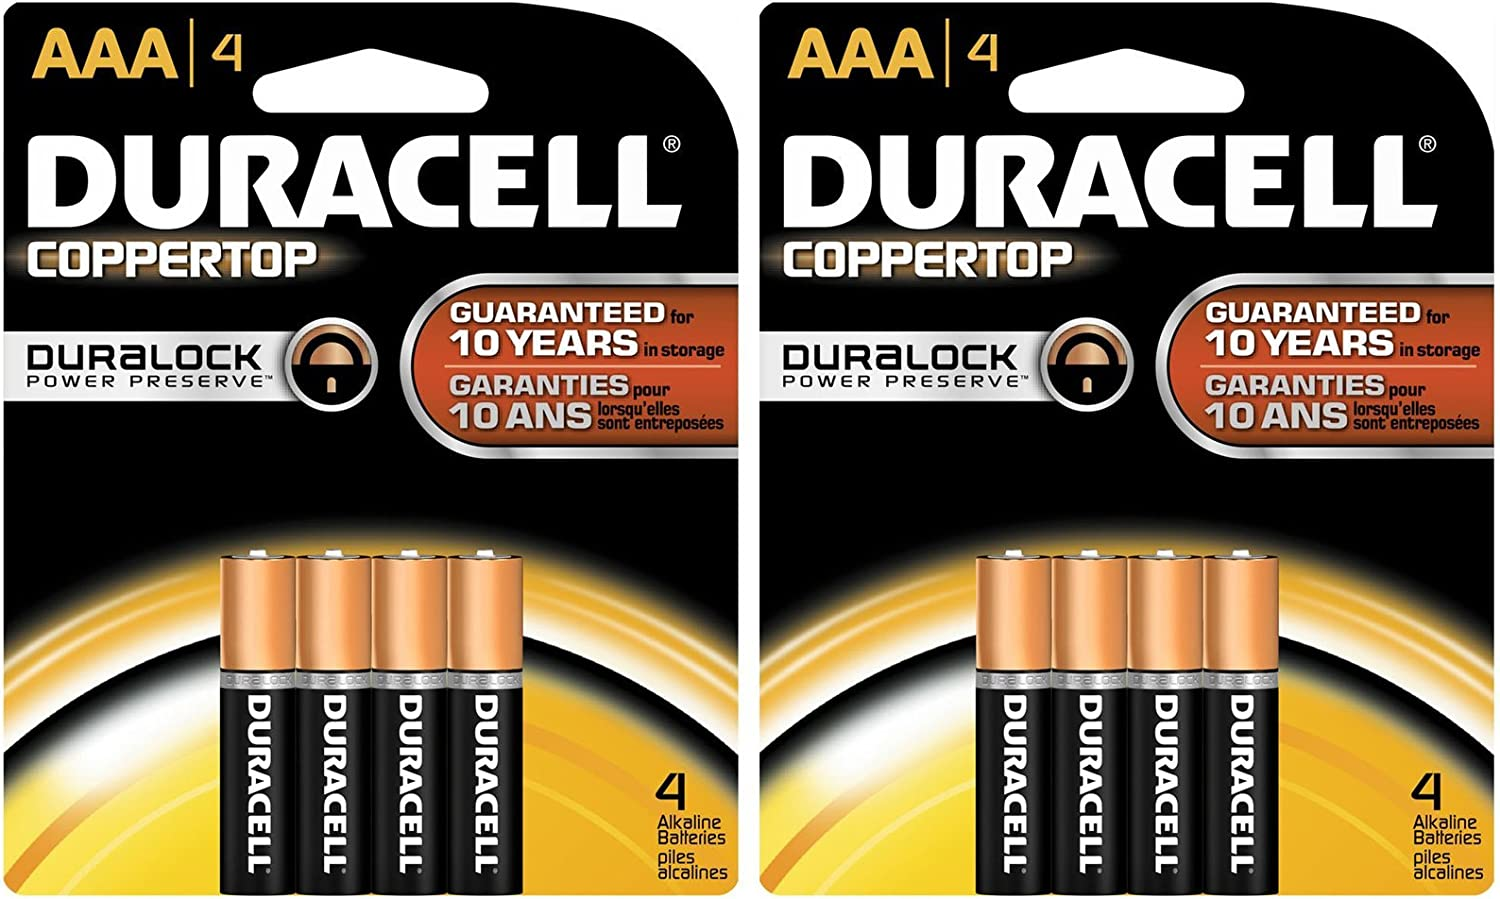 Duracell Coppertop AAA 4ct 2pk Batteries Don't Popular brand in the world miss the campaign